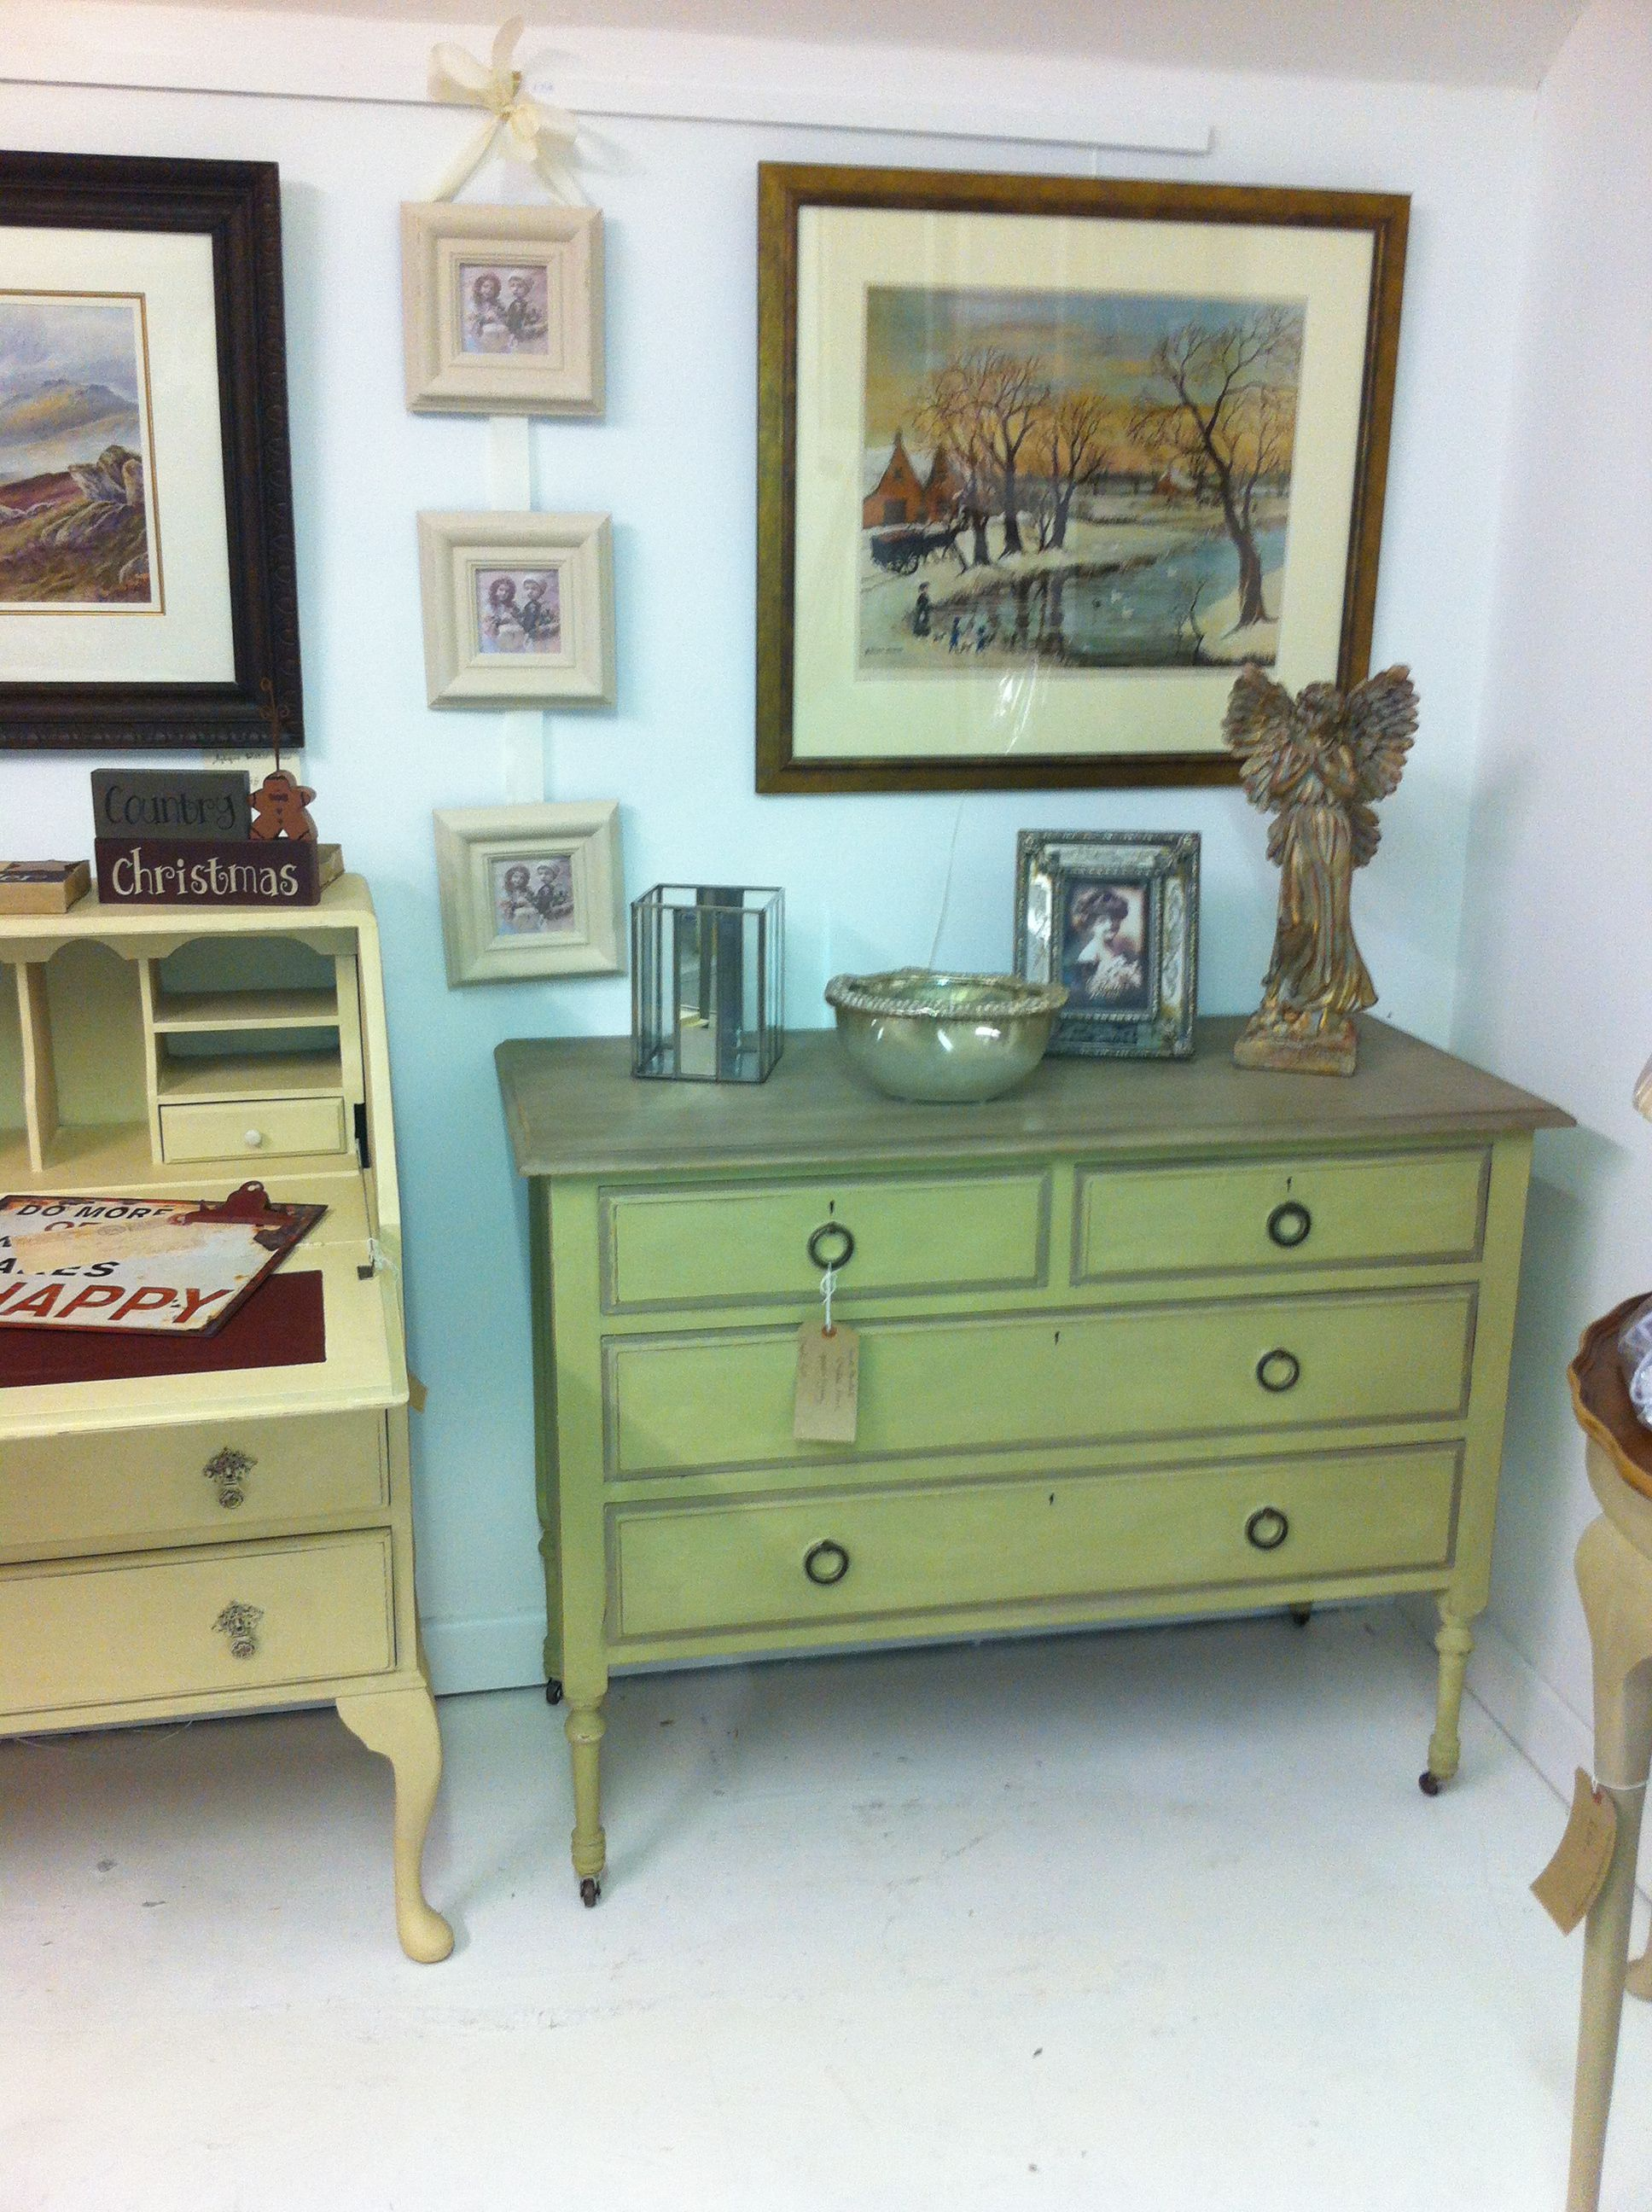 Old Fashioned chest of drawers Furniture, Home decor